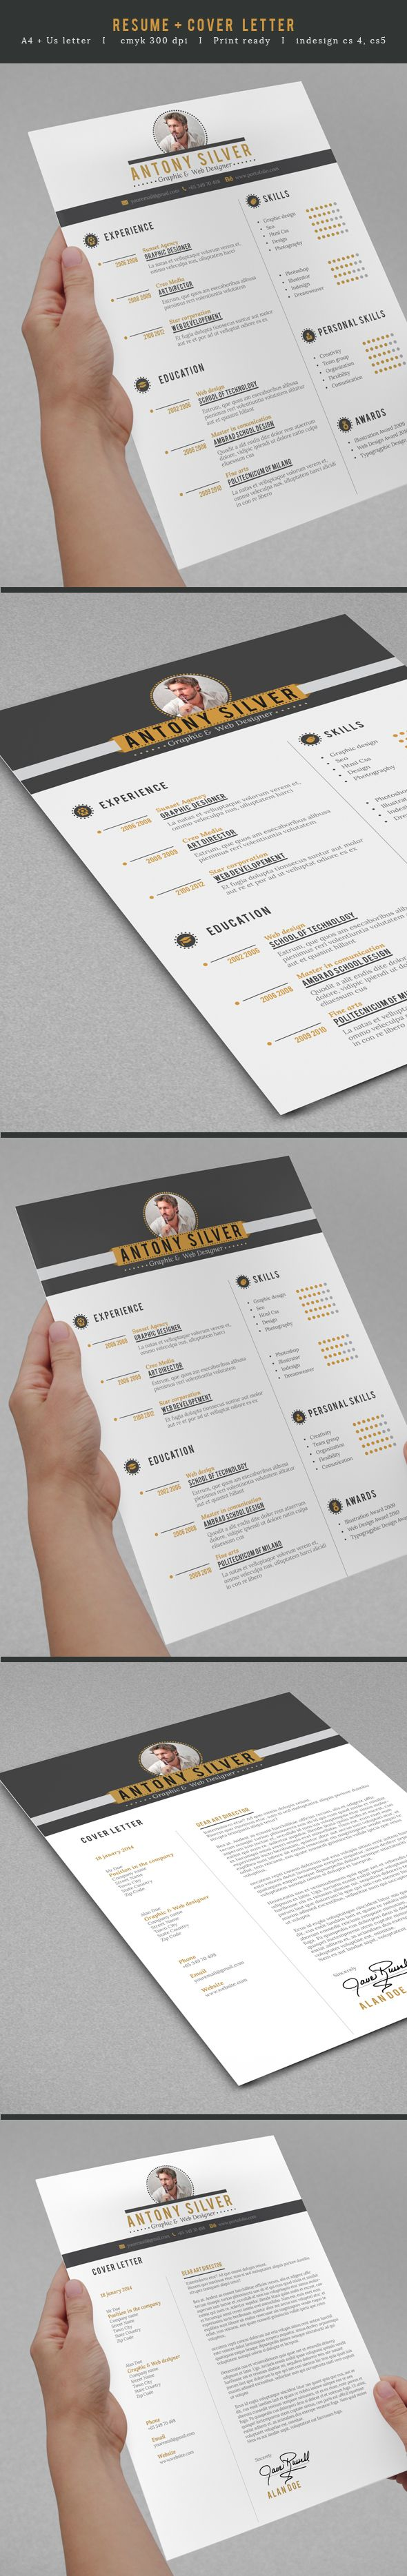 Pretty clean and well formatted resume For